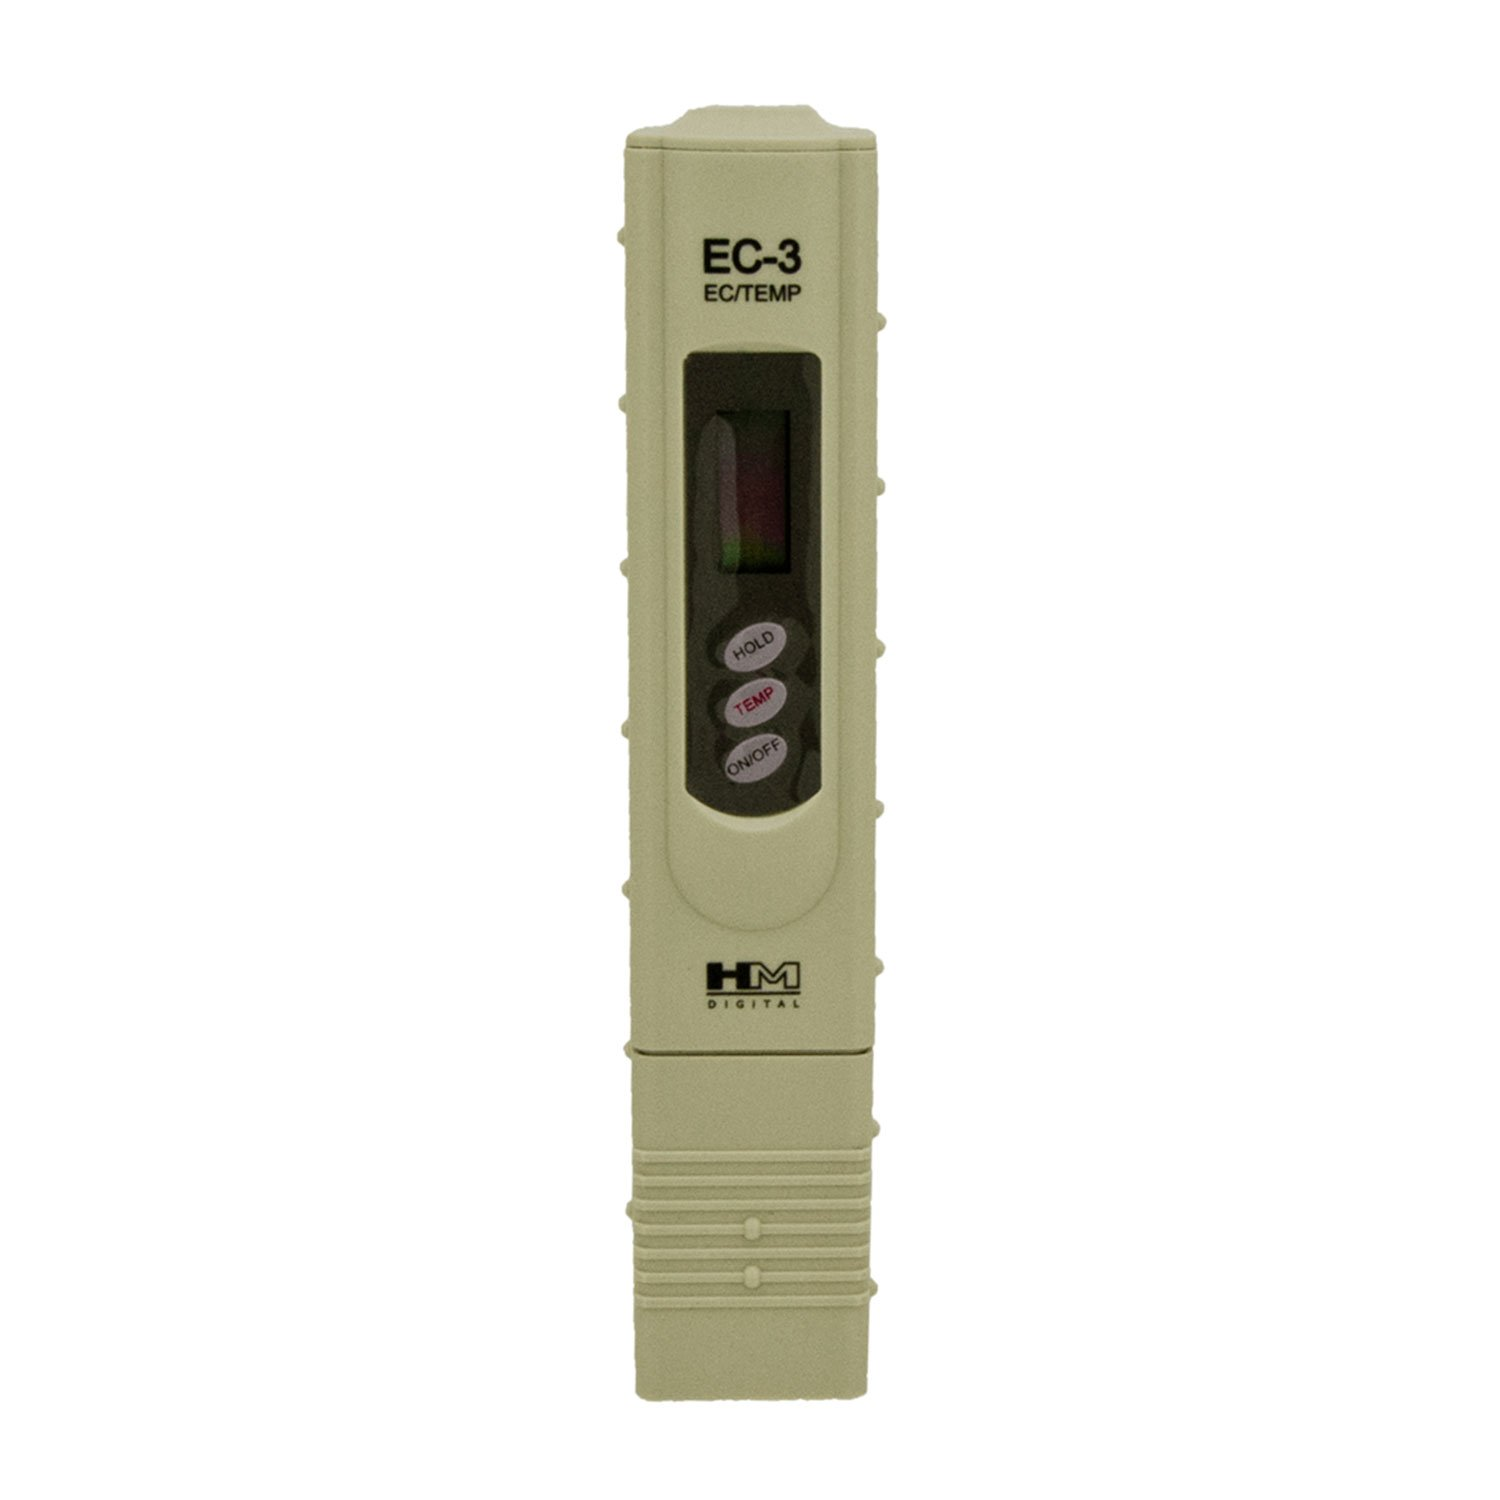 HM Digital EC-3 (EC) Conductivity Meter for Testing Water